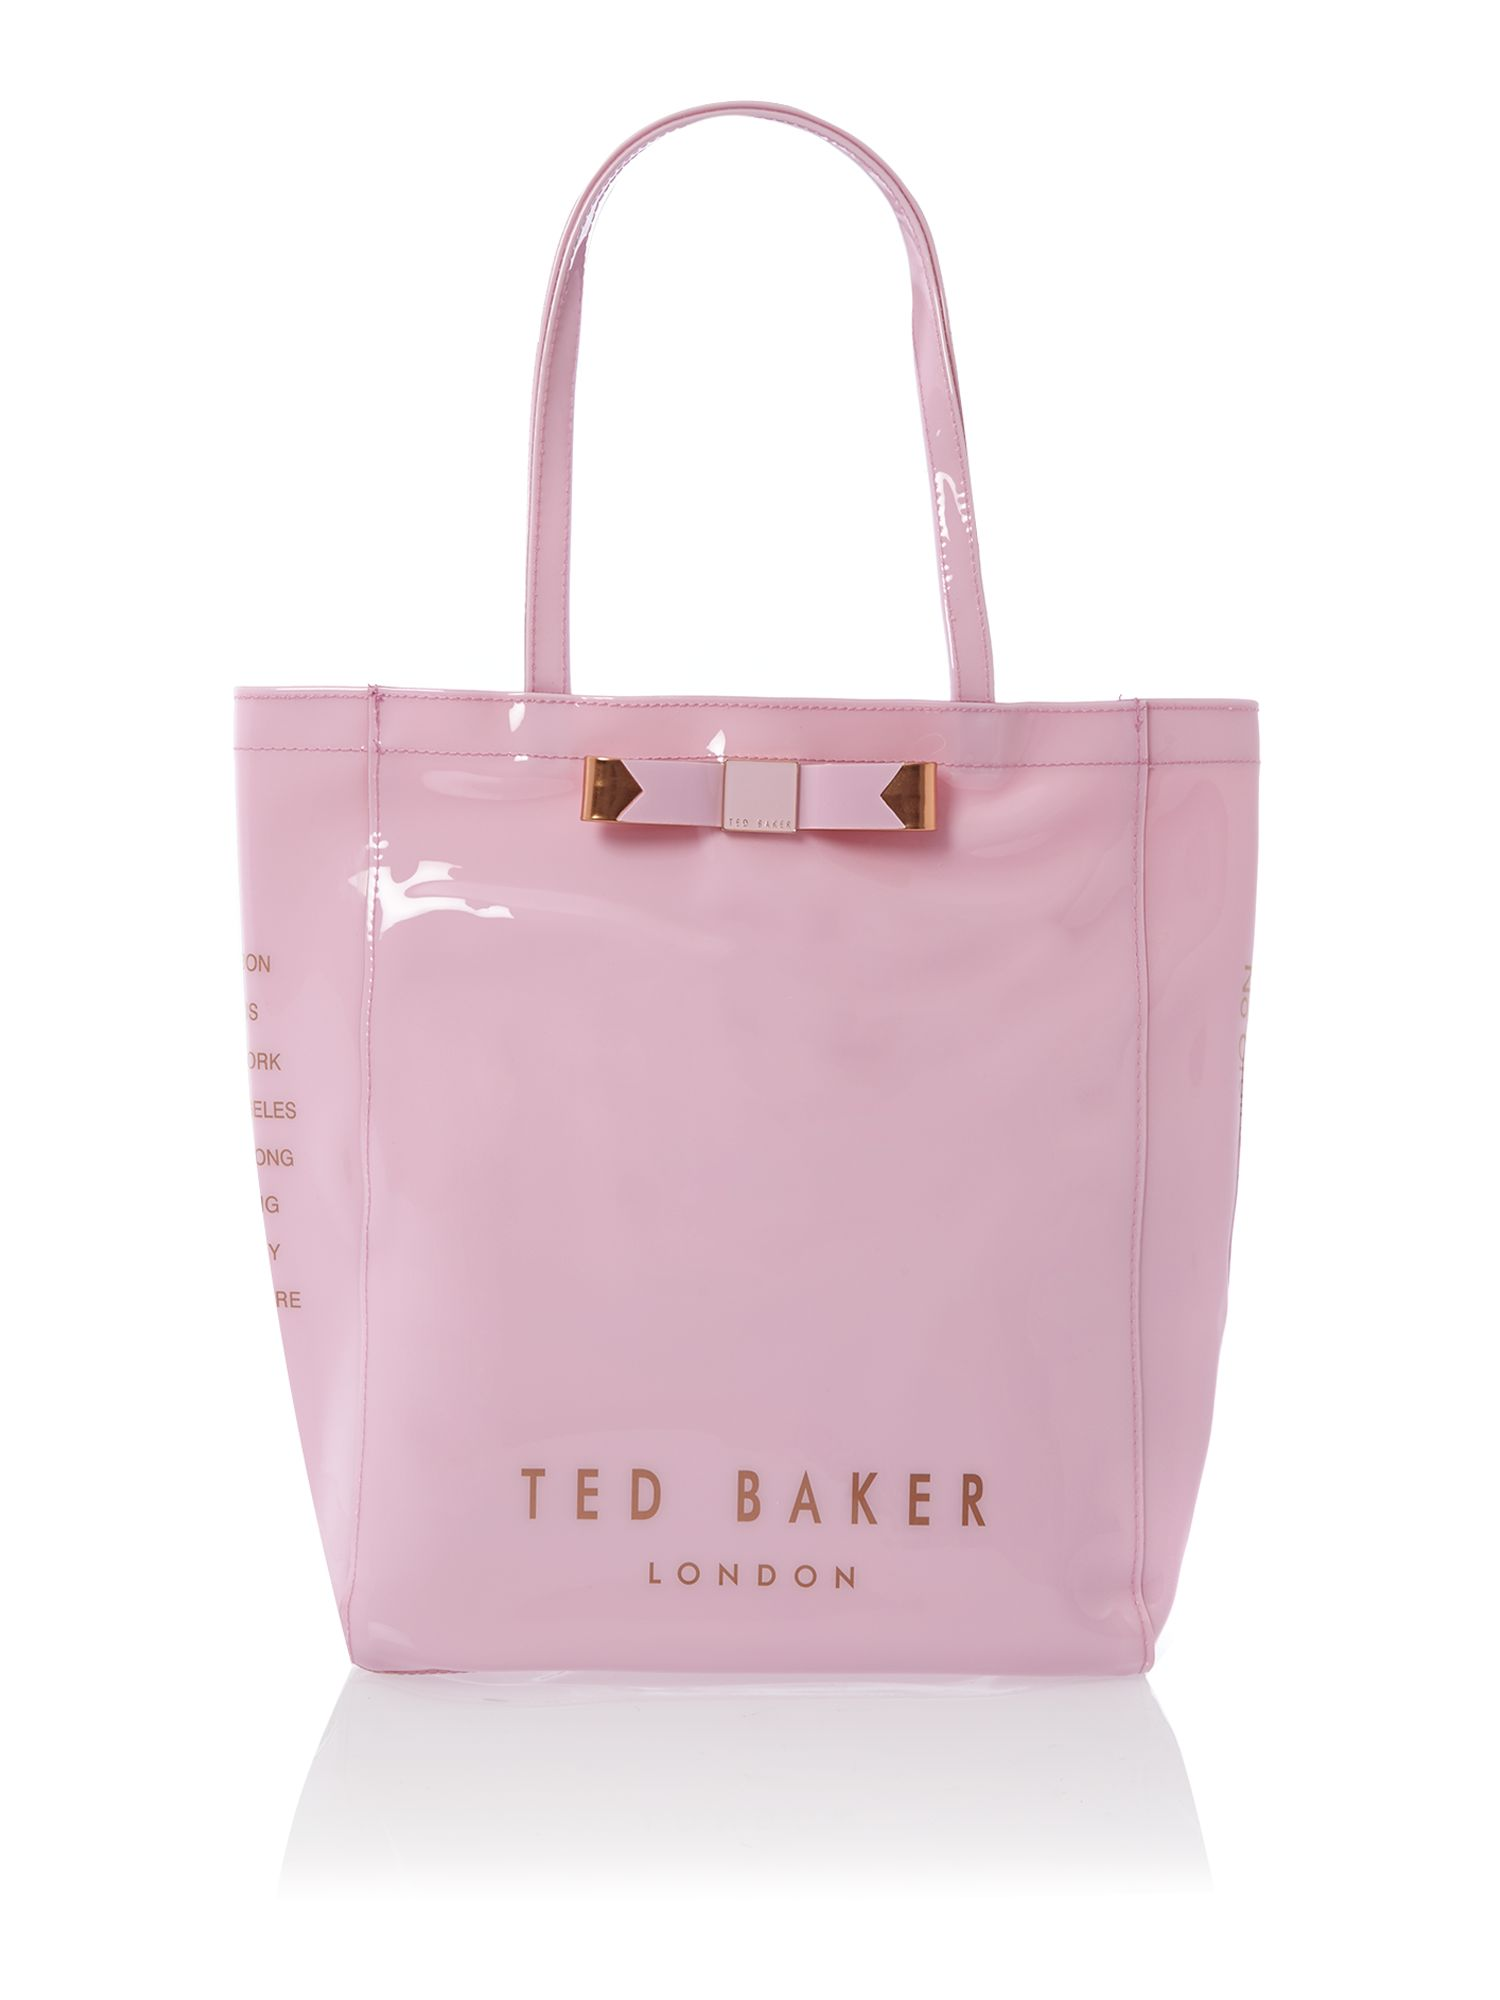 Nov 08,  · Ted Baker at Very. Take your wardrobe a shade brighter with Ted Baker. The British brand is known and loved for its colourful treatment of clothing and accessories. Focusing on statement patterns and lush fabrics, Ted Baker designs pieces for every day and special events alike.